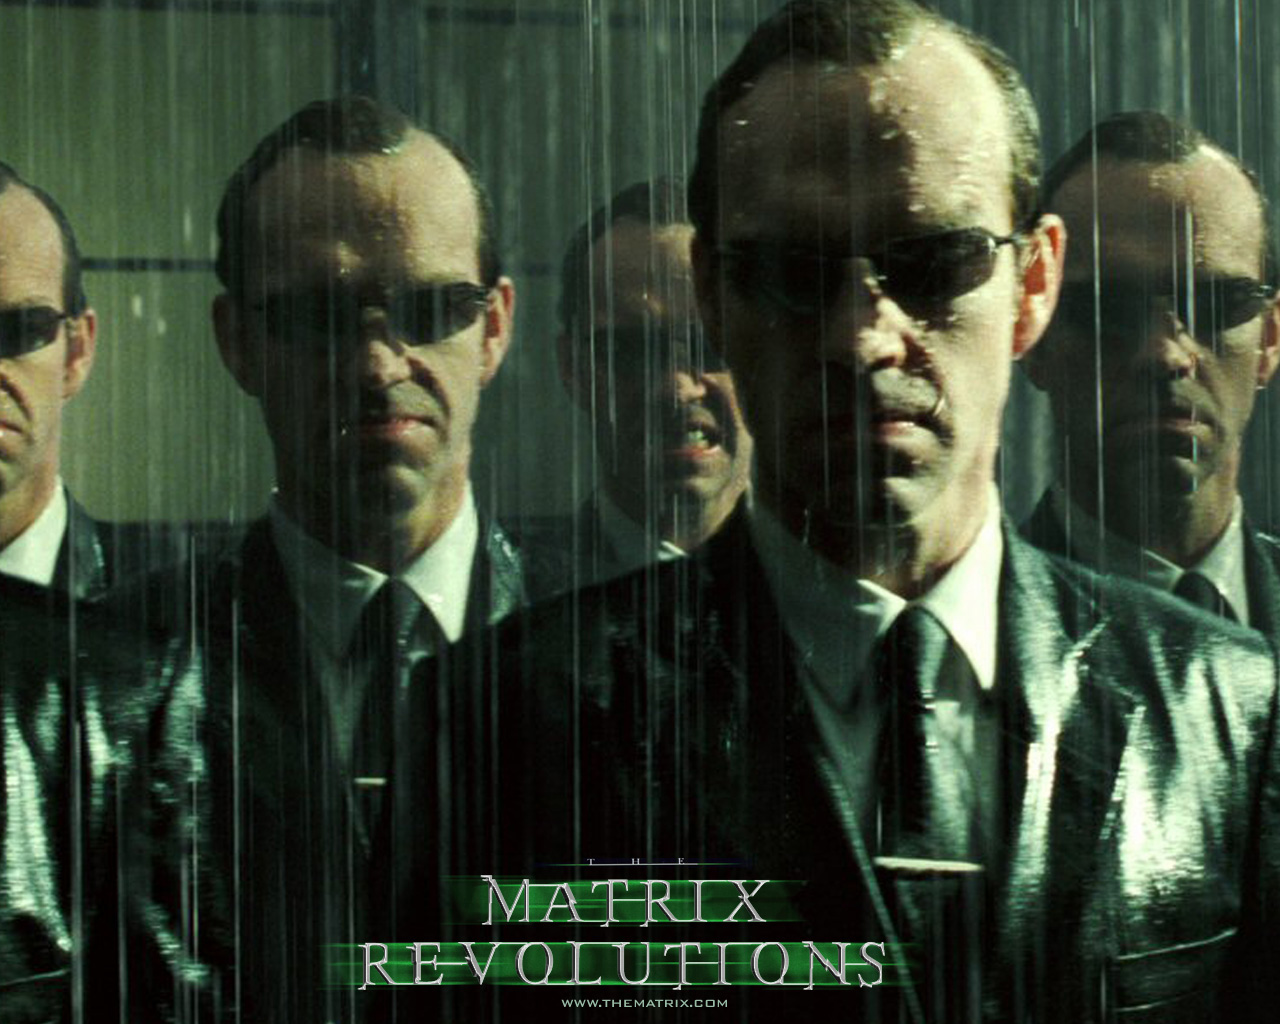 http://4.bp.blogspot.com/_voIkIJnfHEE/TSbWs6BxzYI/AAAAAAAABFU/Z8_JEEtoD8s/s1600/The_Matrix_Revolutions_Wallpaper_24_1280.jpg